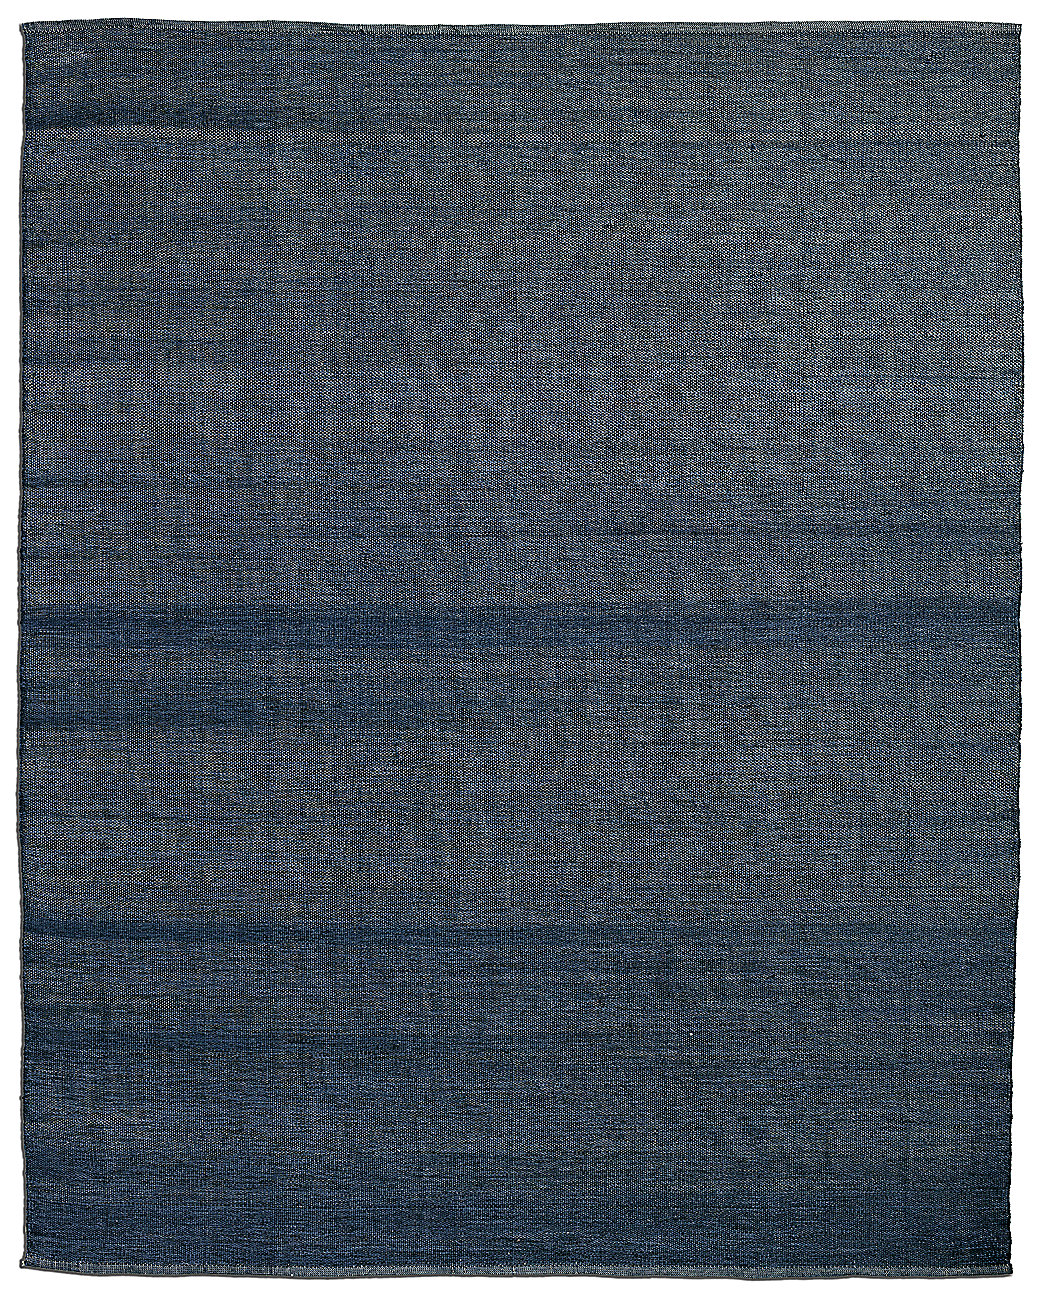 All-Weather Recycled Heathered Solid Outdoor Rug - Blue